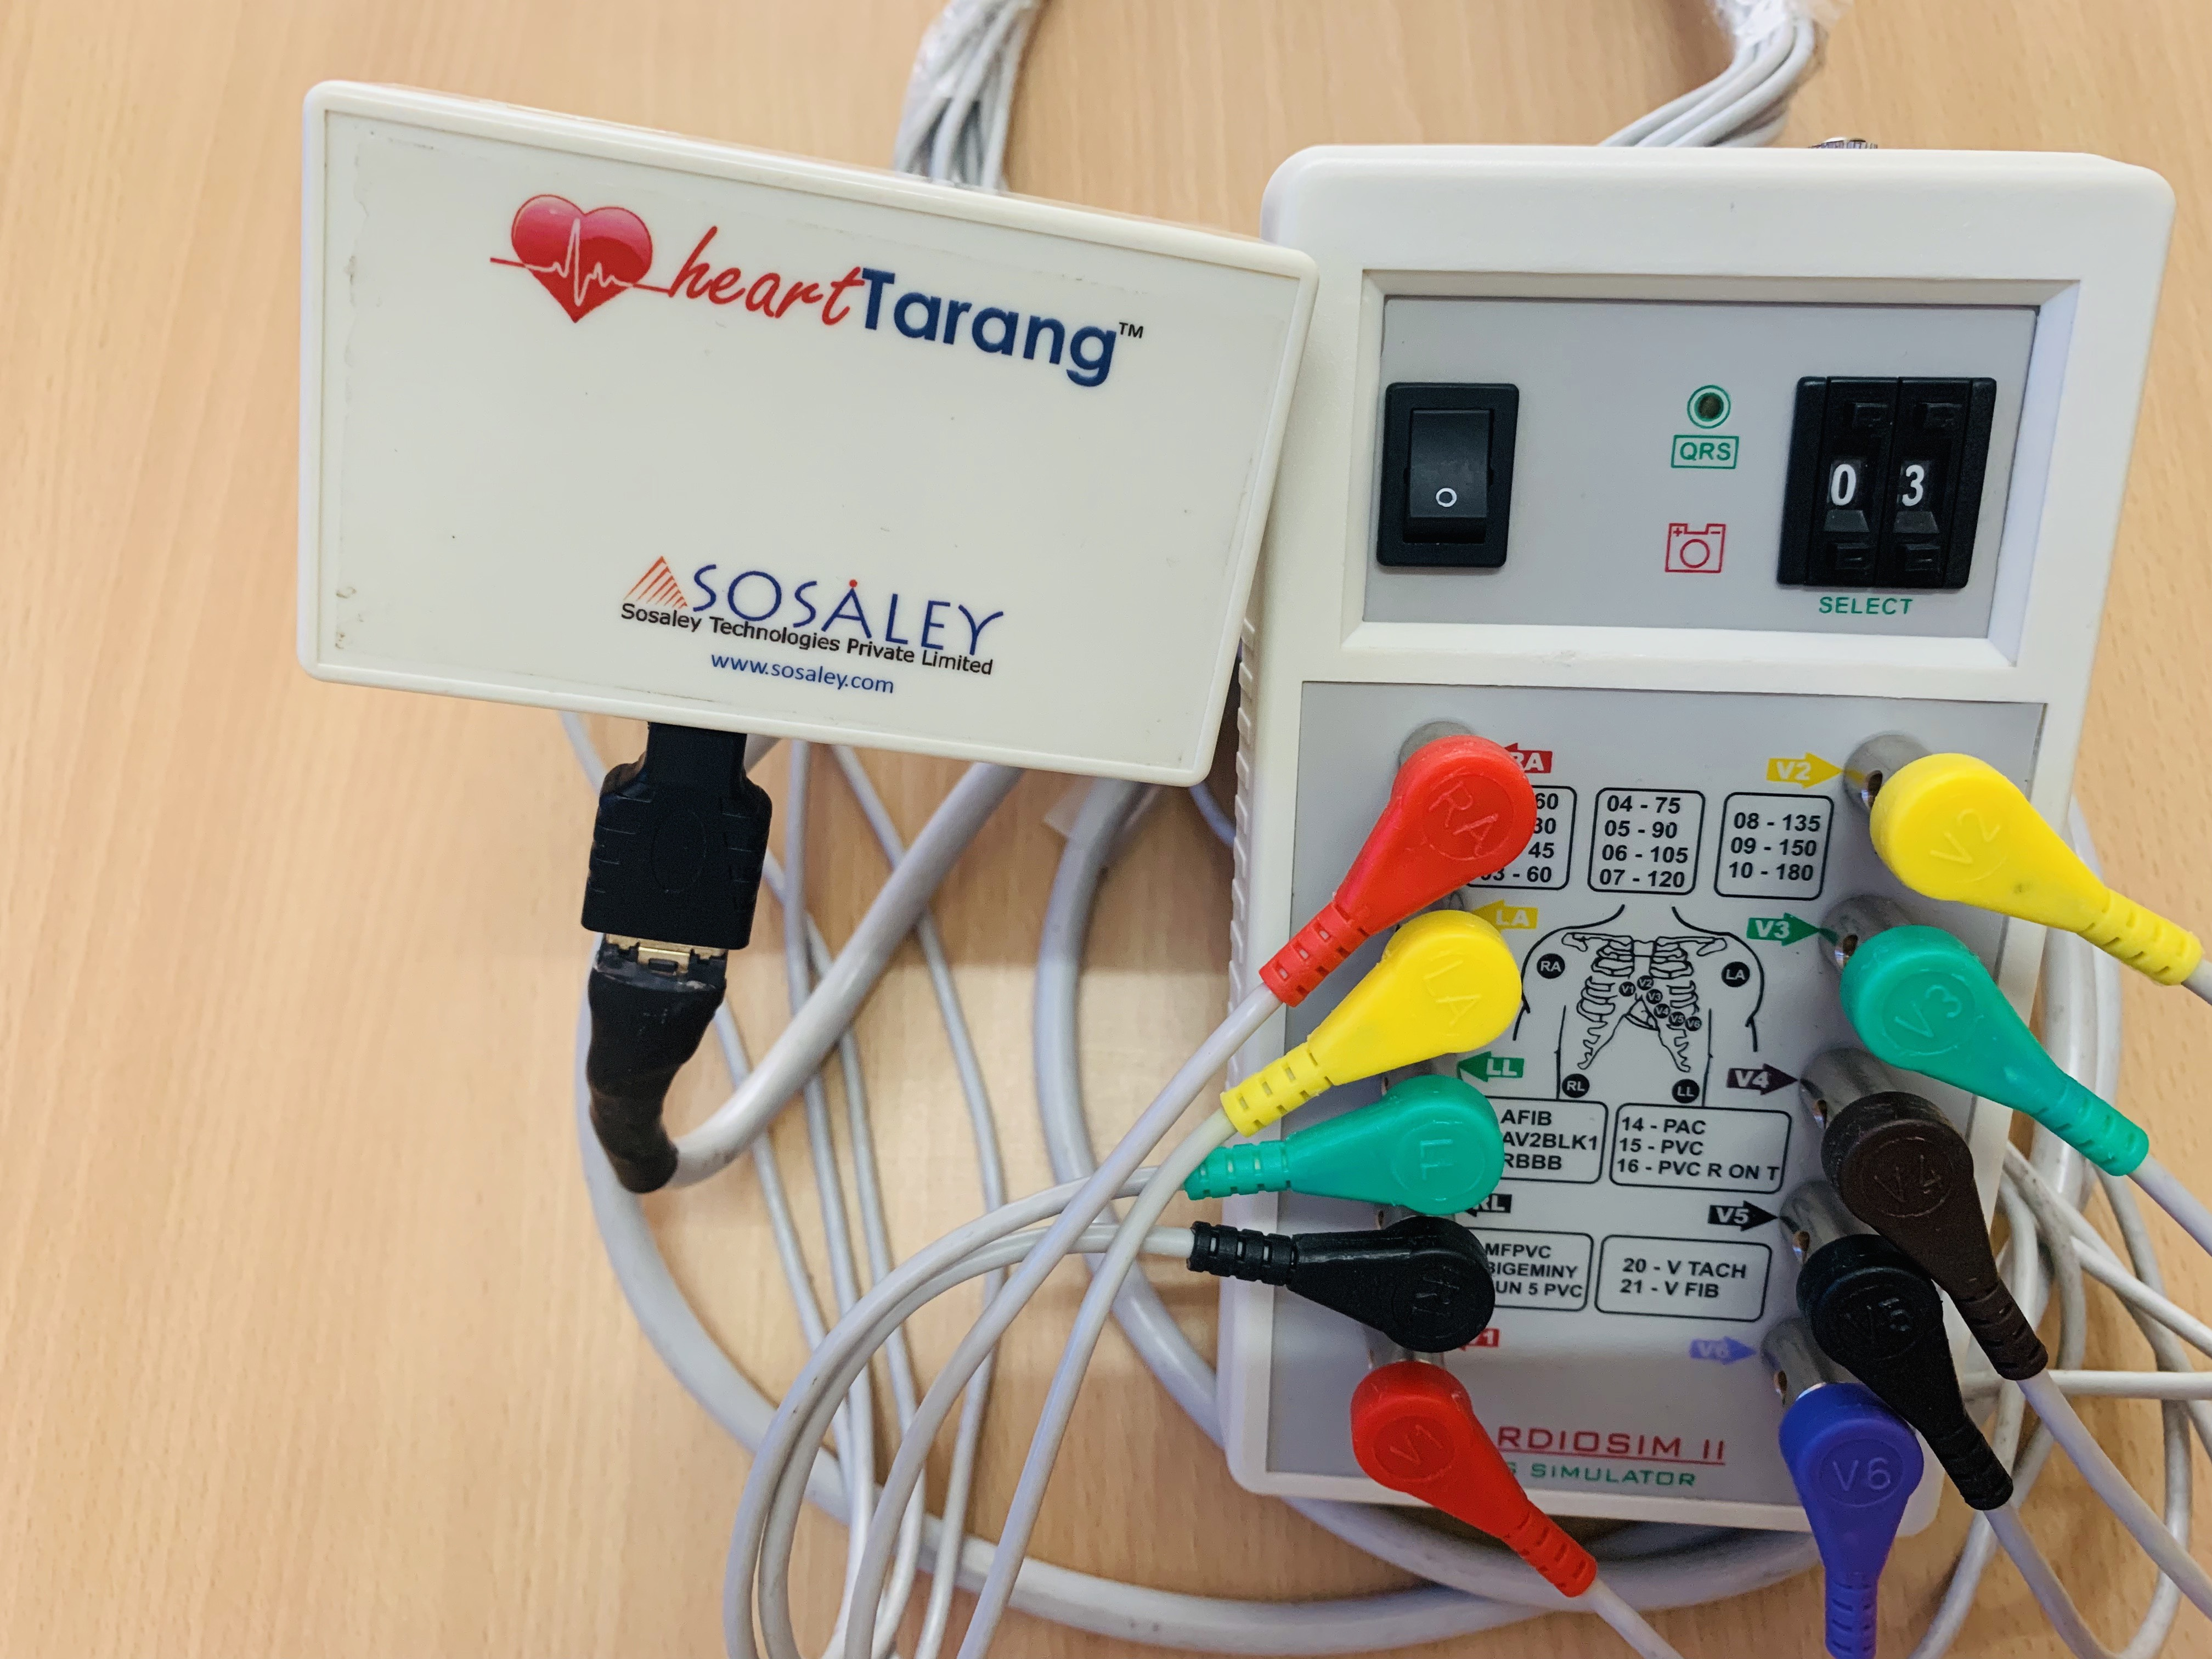 sosaley wireless ecg snap 2